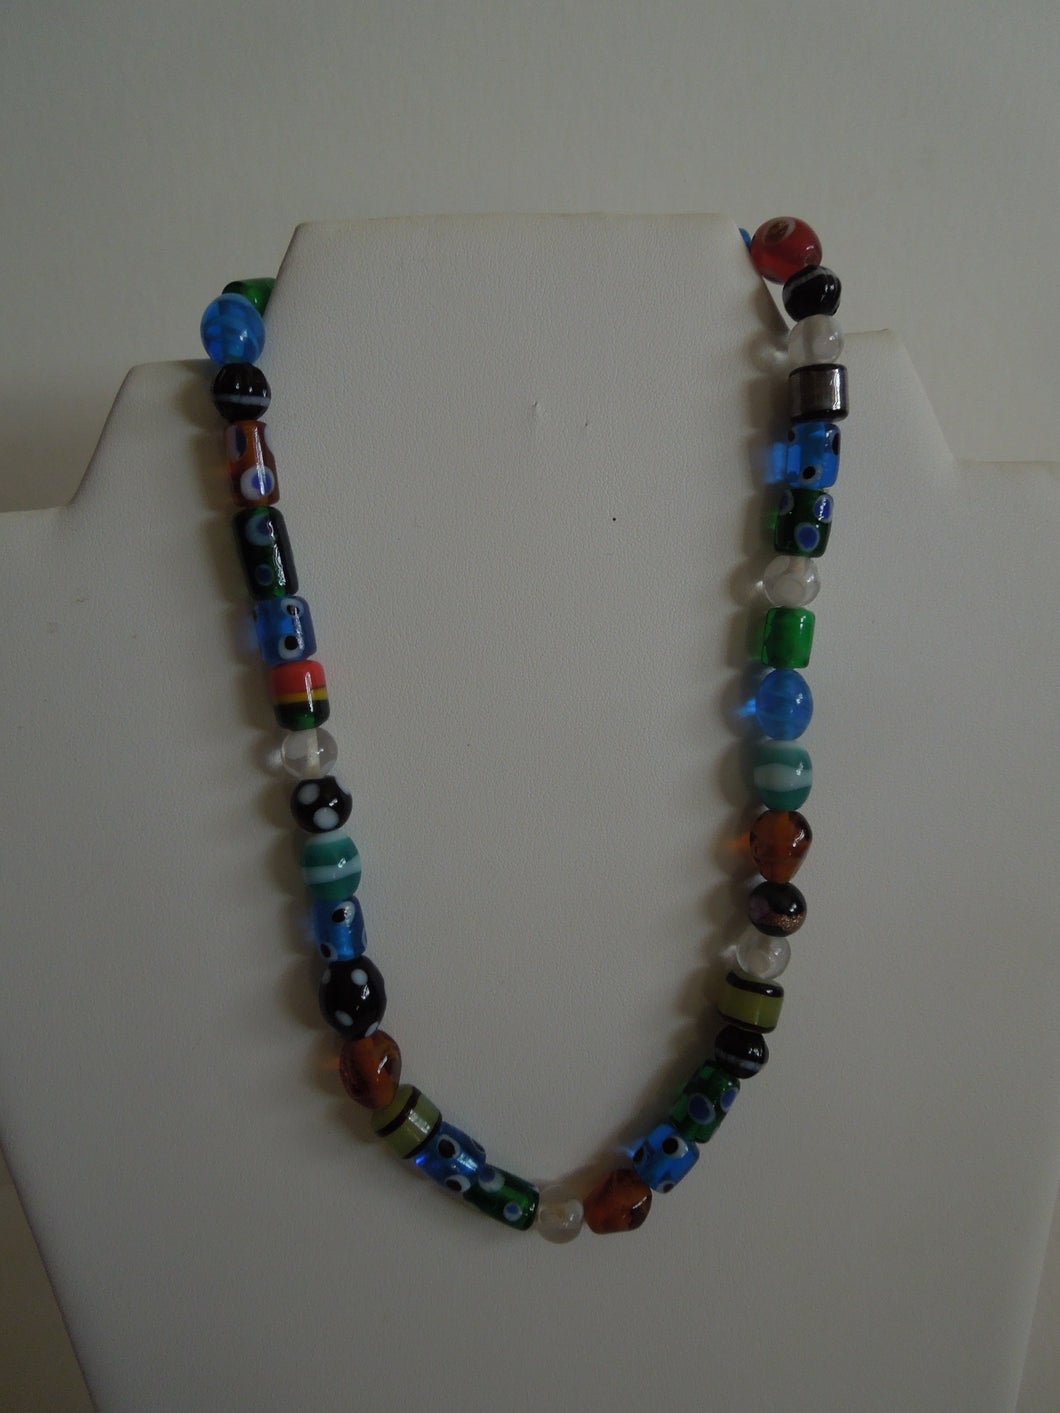 Jewelry - Multi-color Glass Beads on Elastic